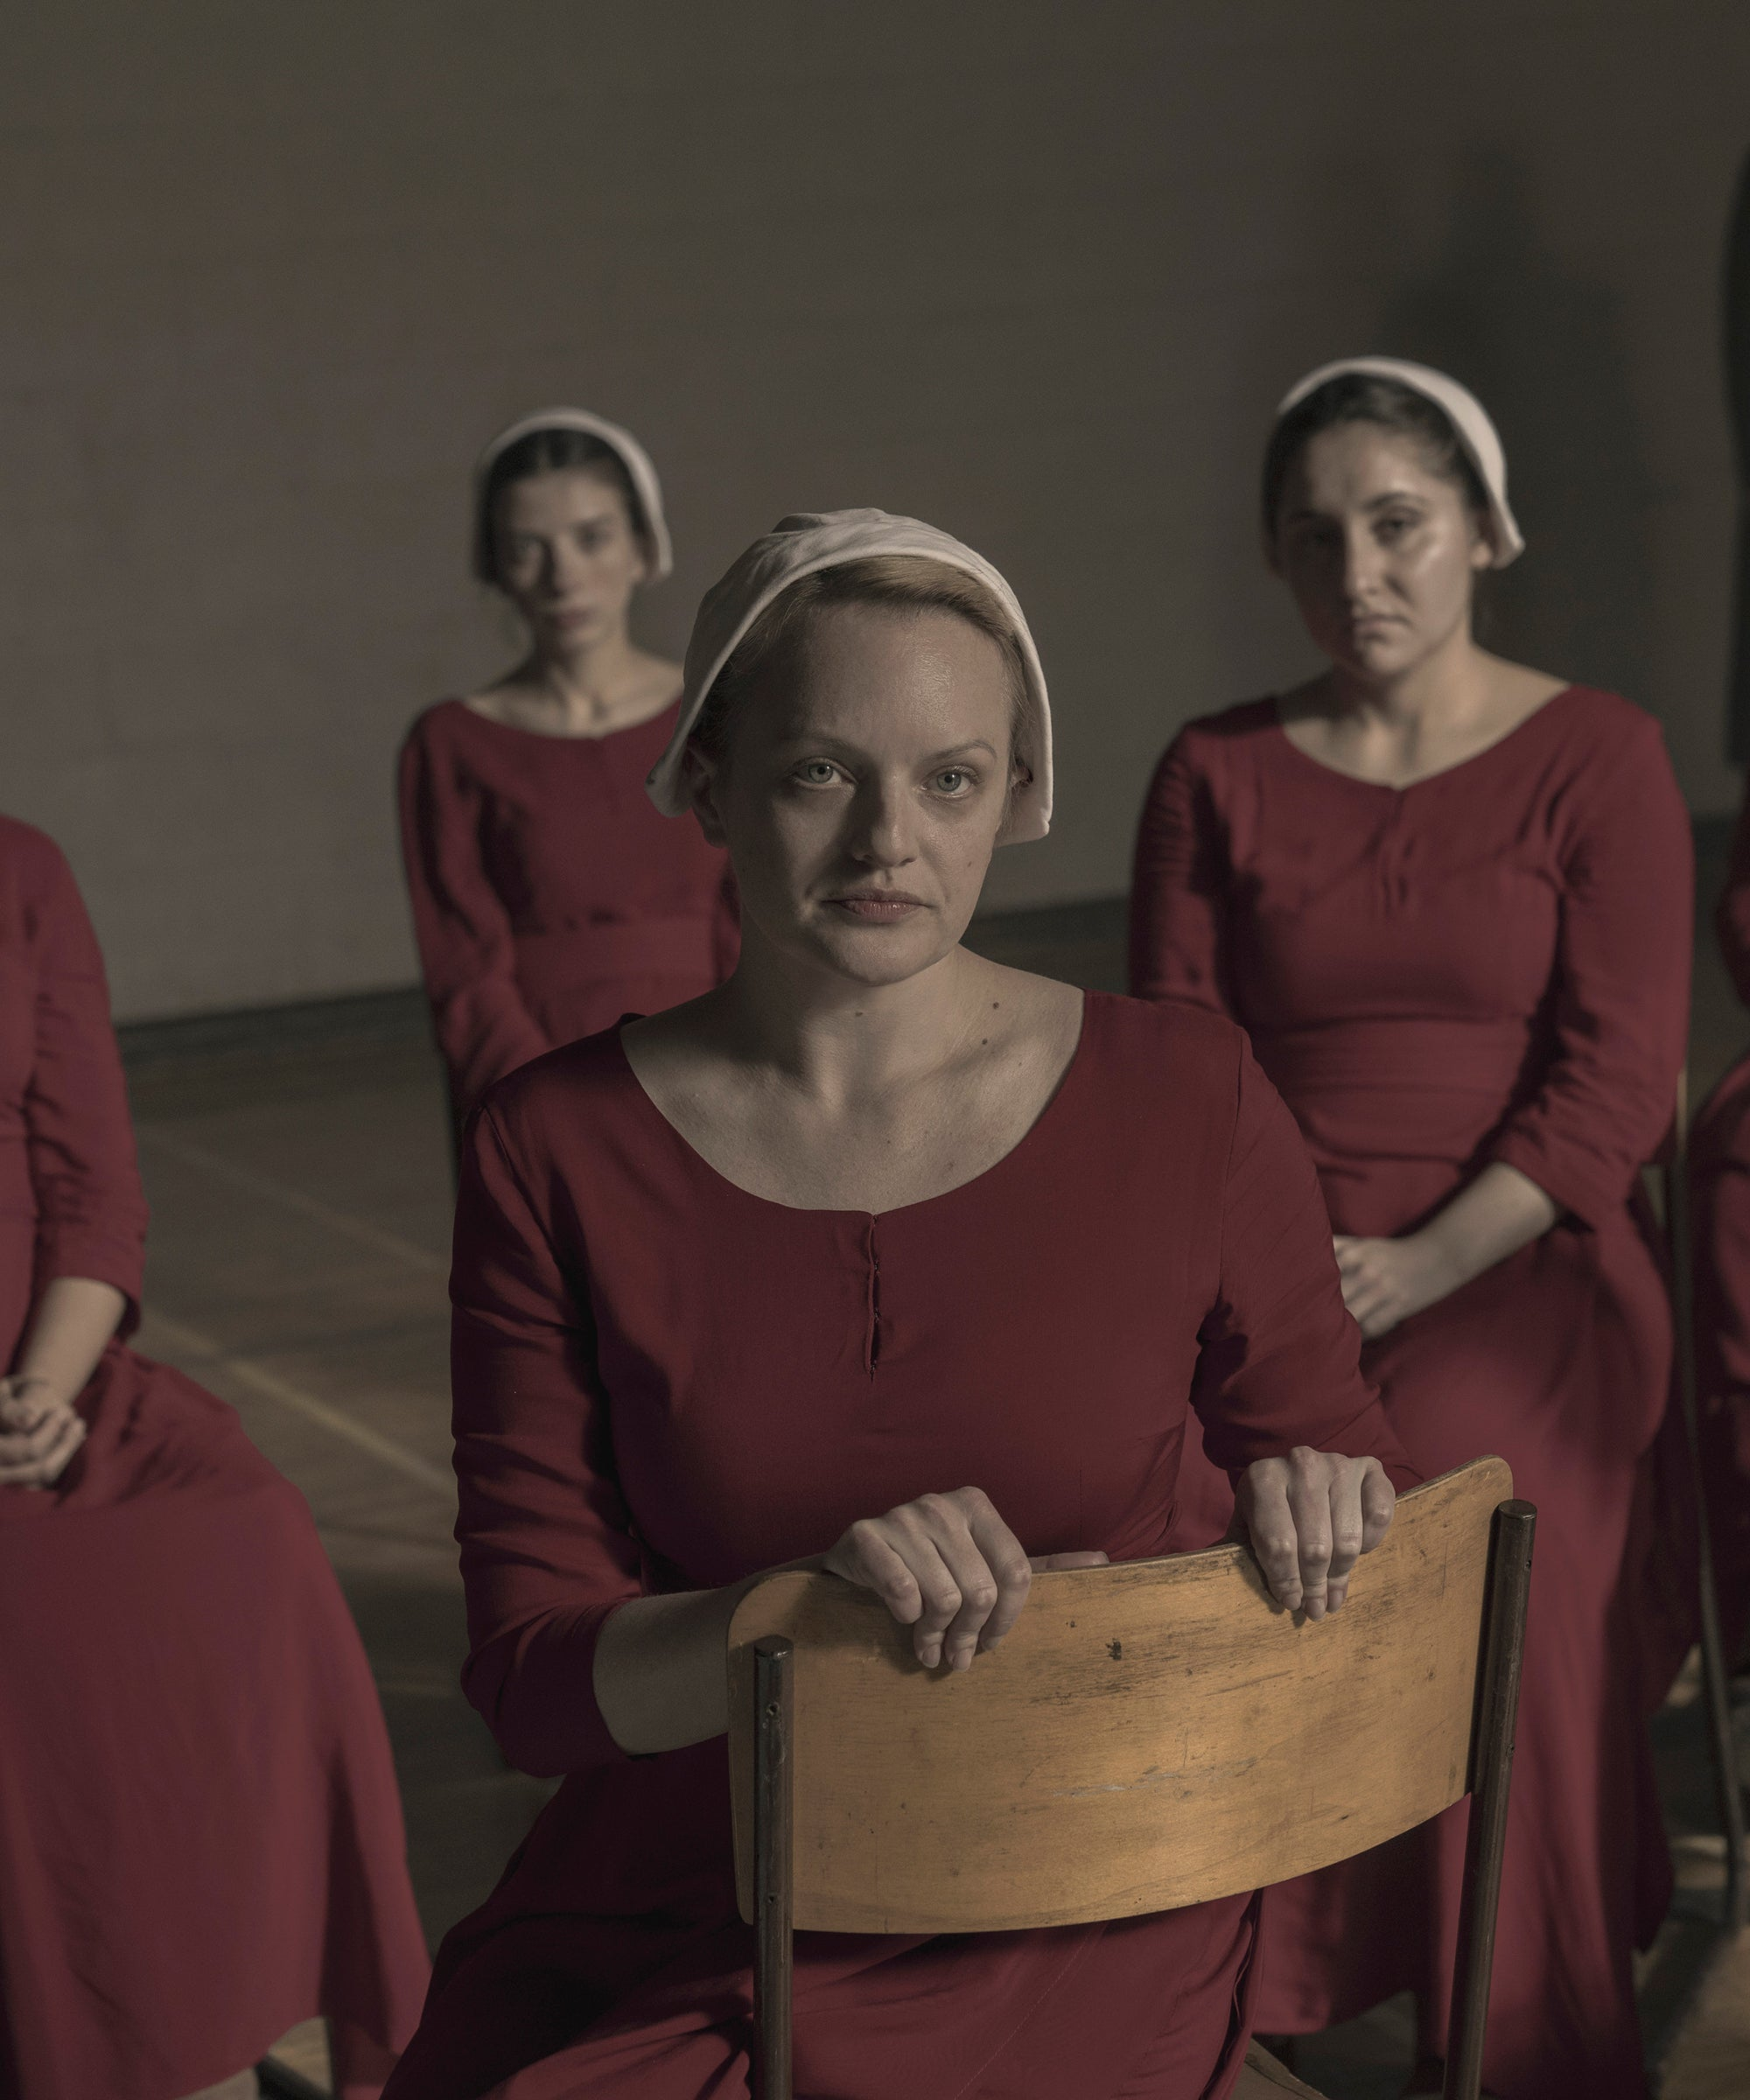 Yes Handmaid's Tale Fans, There Is A Sequel Coming, But You'll Have To Wait